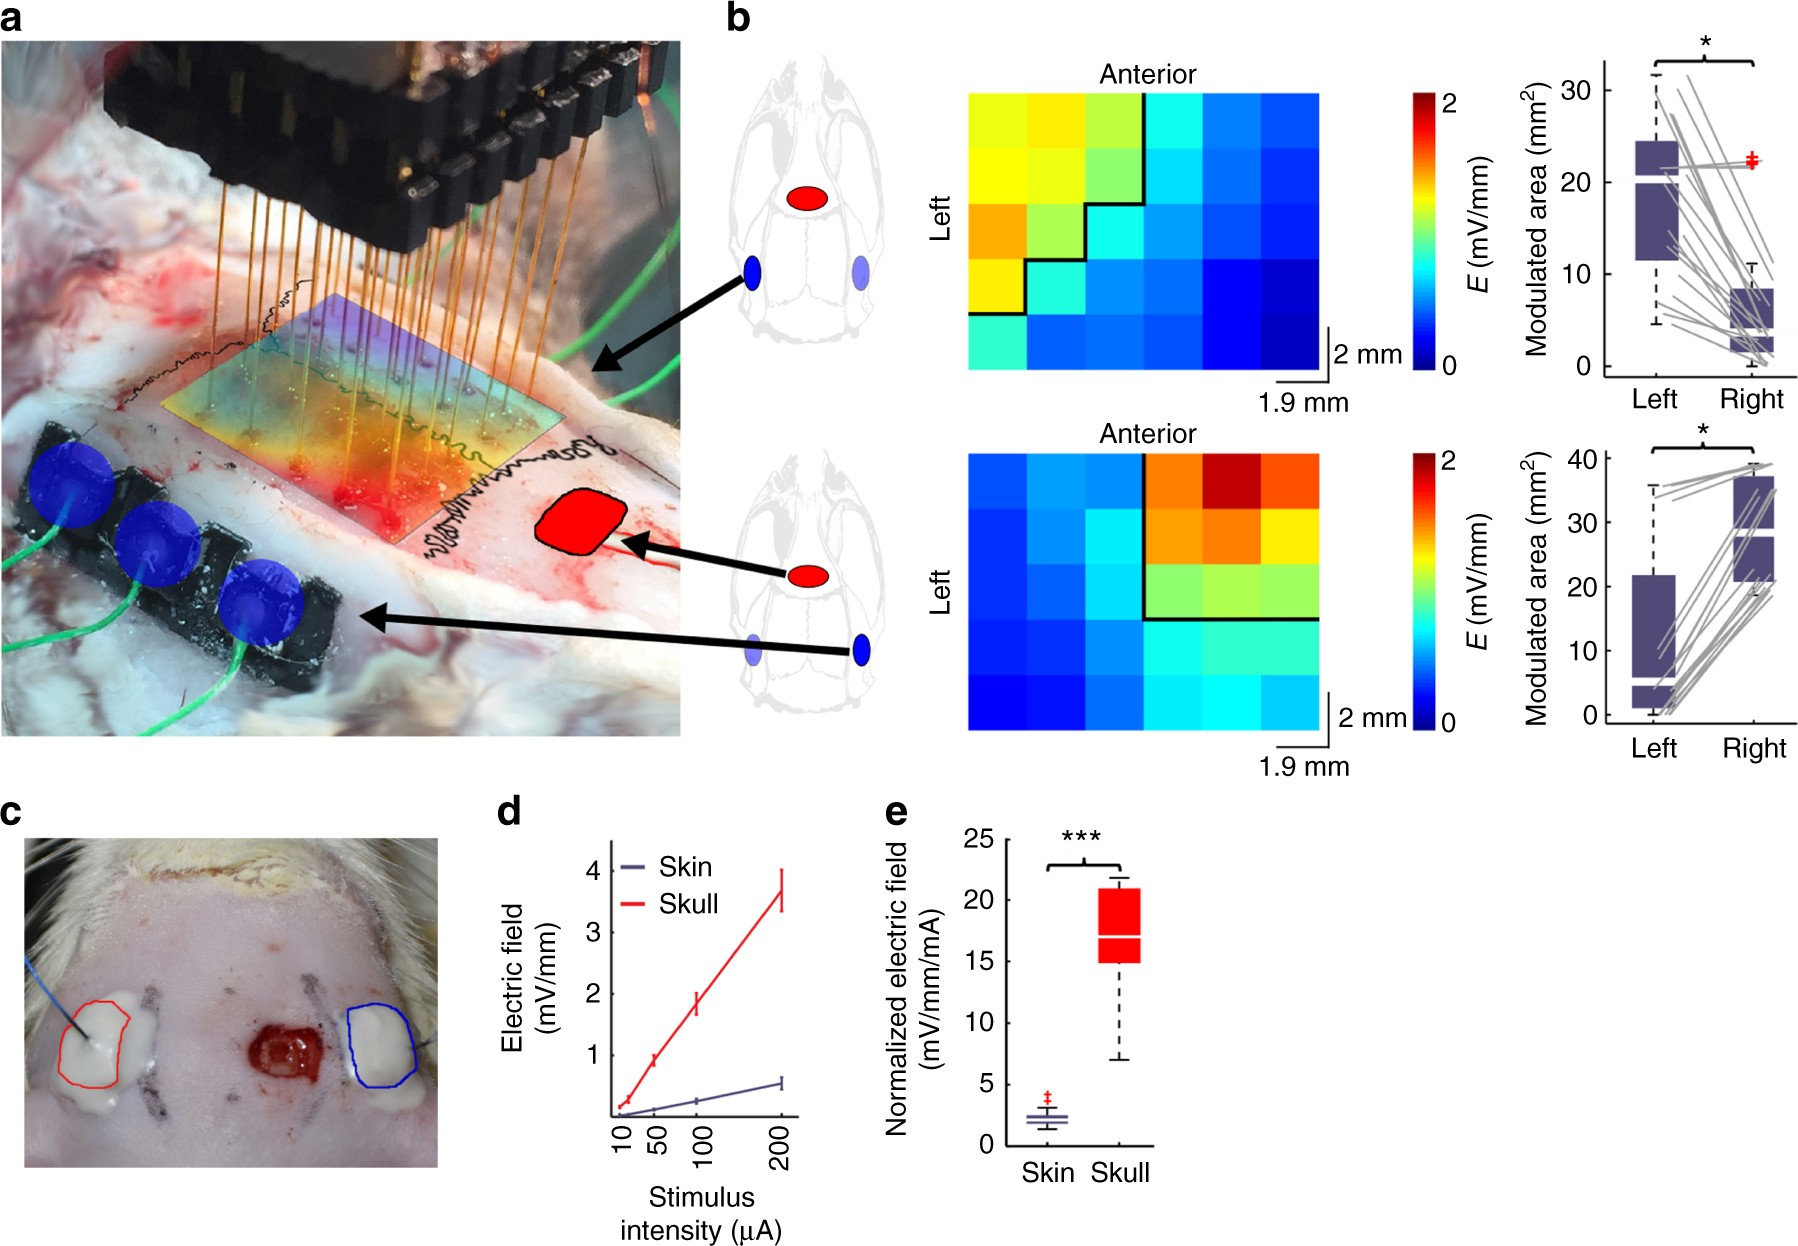 Direct Effects Of Transcranial Electric Stimulation On Brain At Pc Power Supply 1 Electronic Circuit By Levone Circuits In Rats And Humans Nature Communications